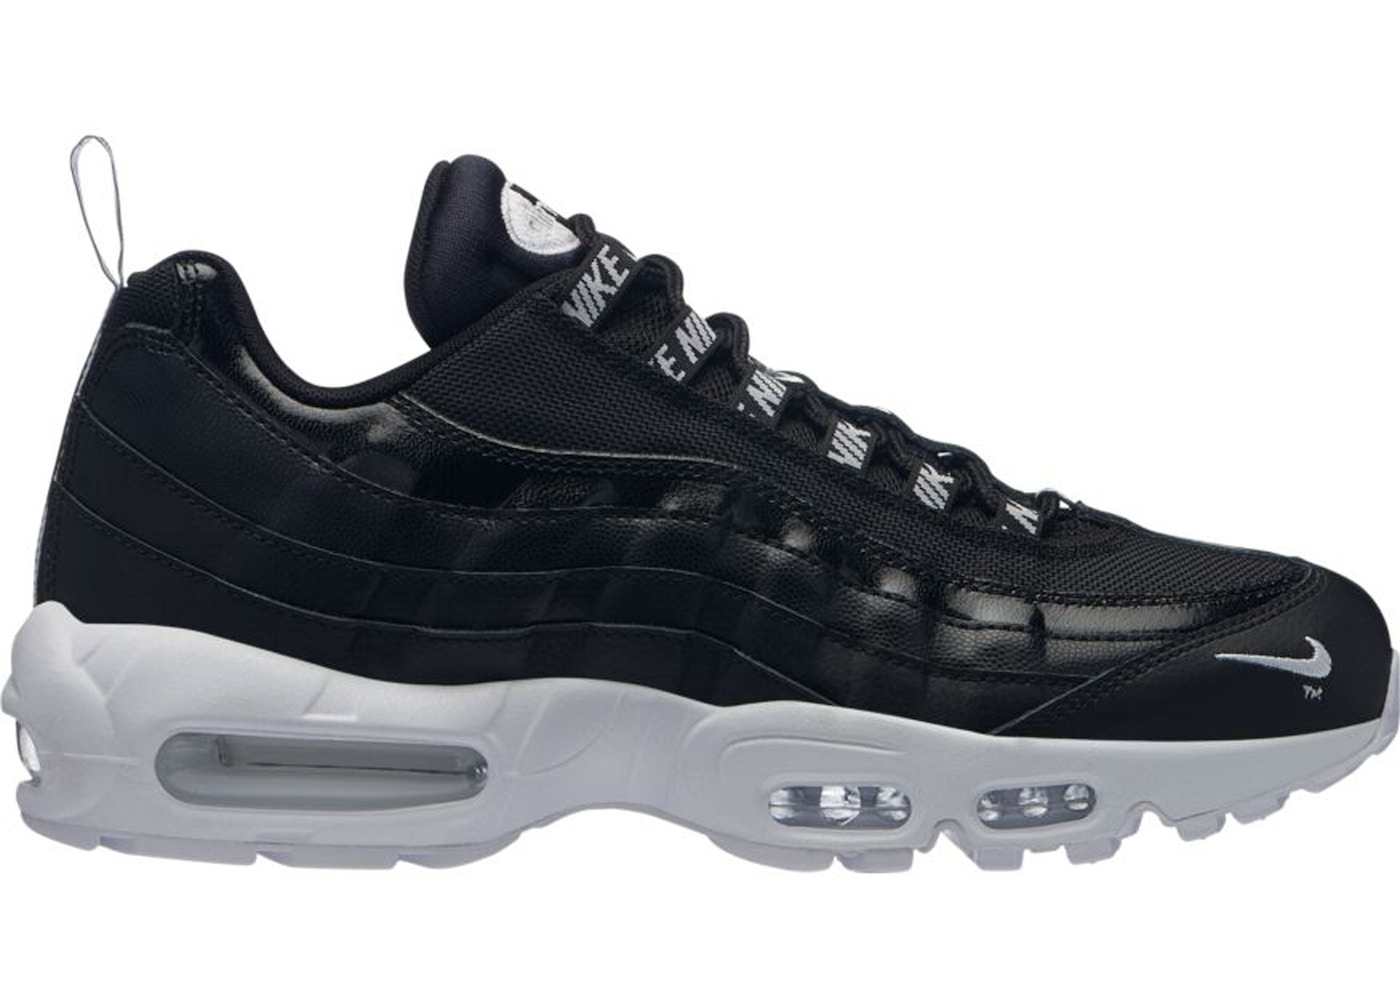 wholesale dealer ce72f 19a12 Buy Nike Air Max 95 Shoes & Deadstock Sneakers